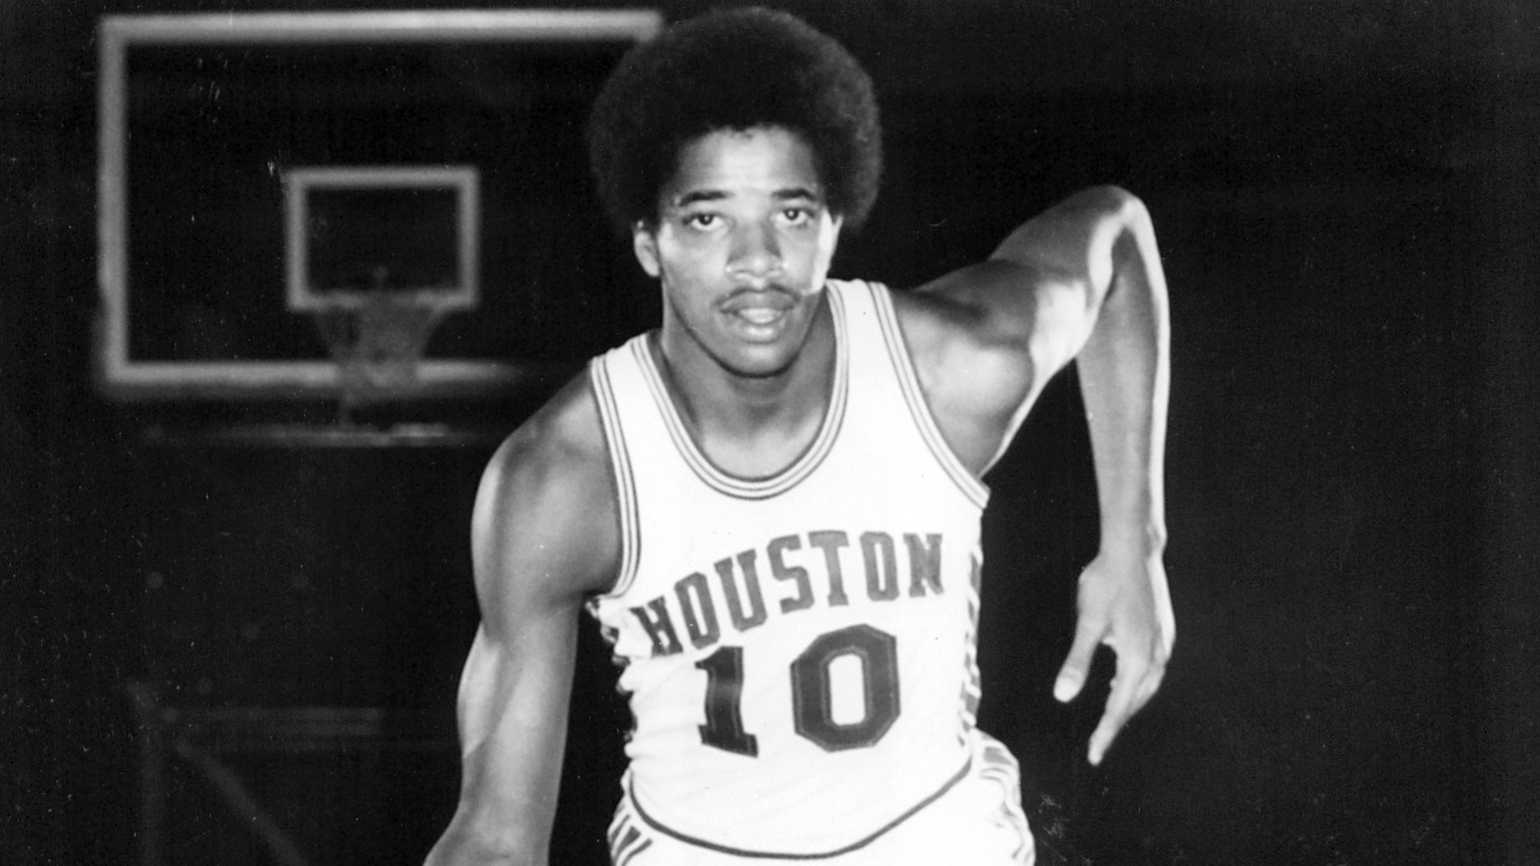 Former collegiate and professional basketball star Otis Birdsong